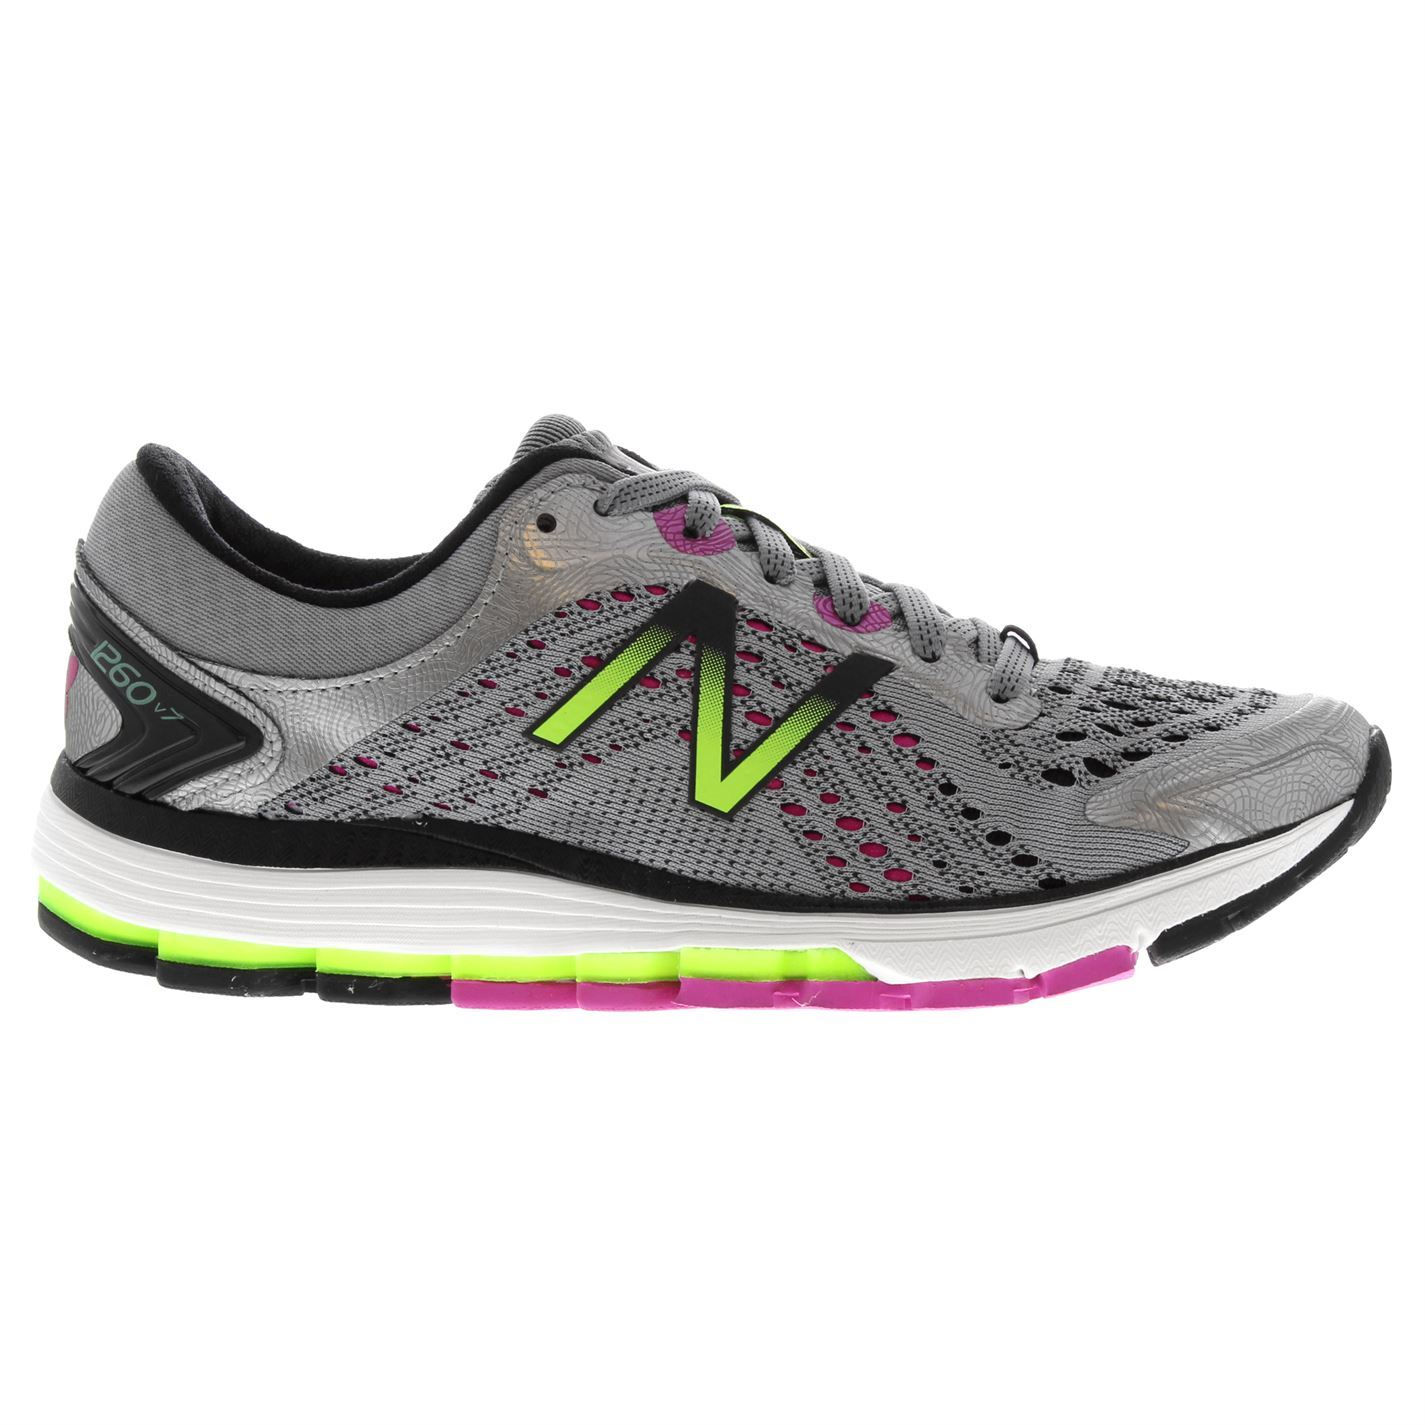 New Balance Damenschuhe 1260v7 Running Running 1260v7 Trainers Road Schuhes Lace Up Breathable Padded 8aeb1f